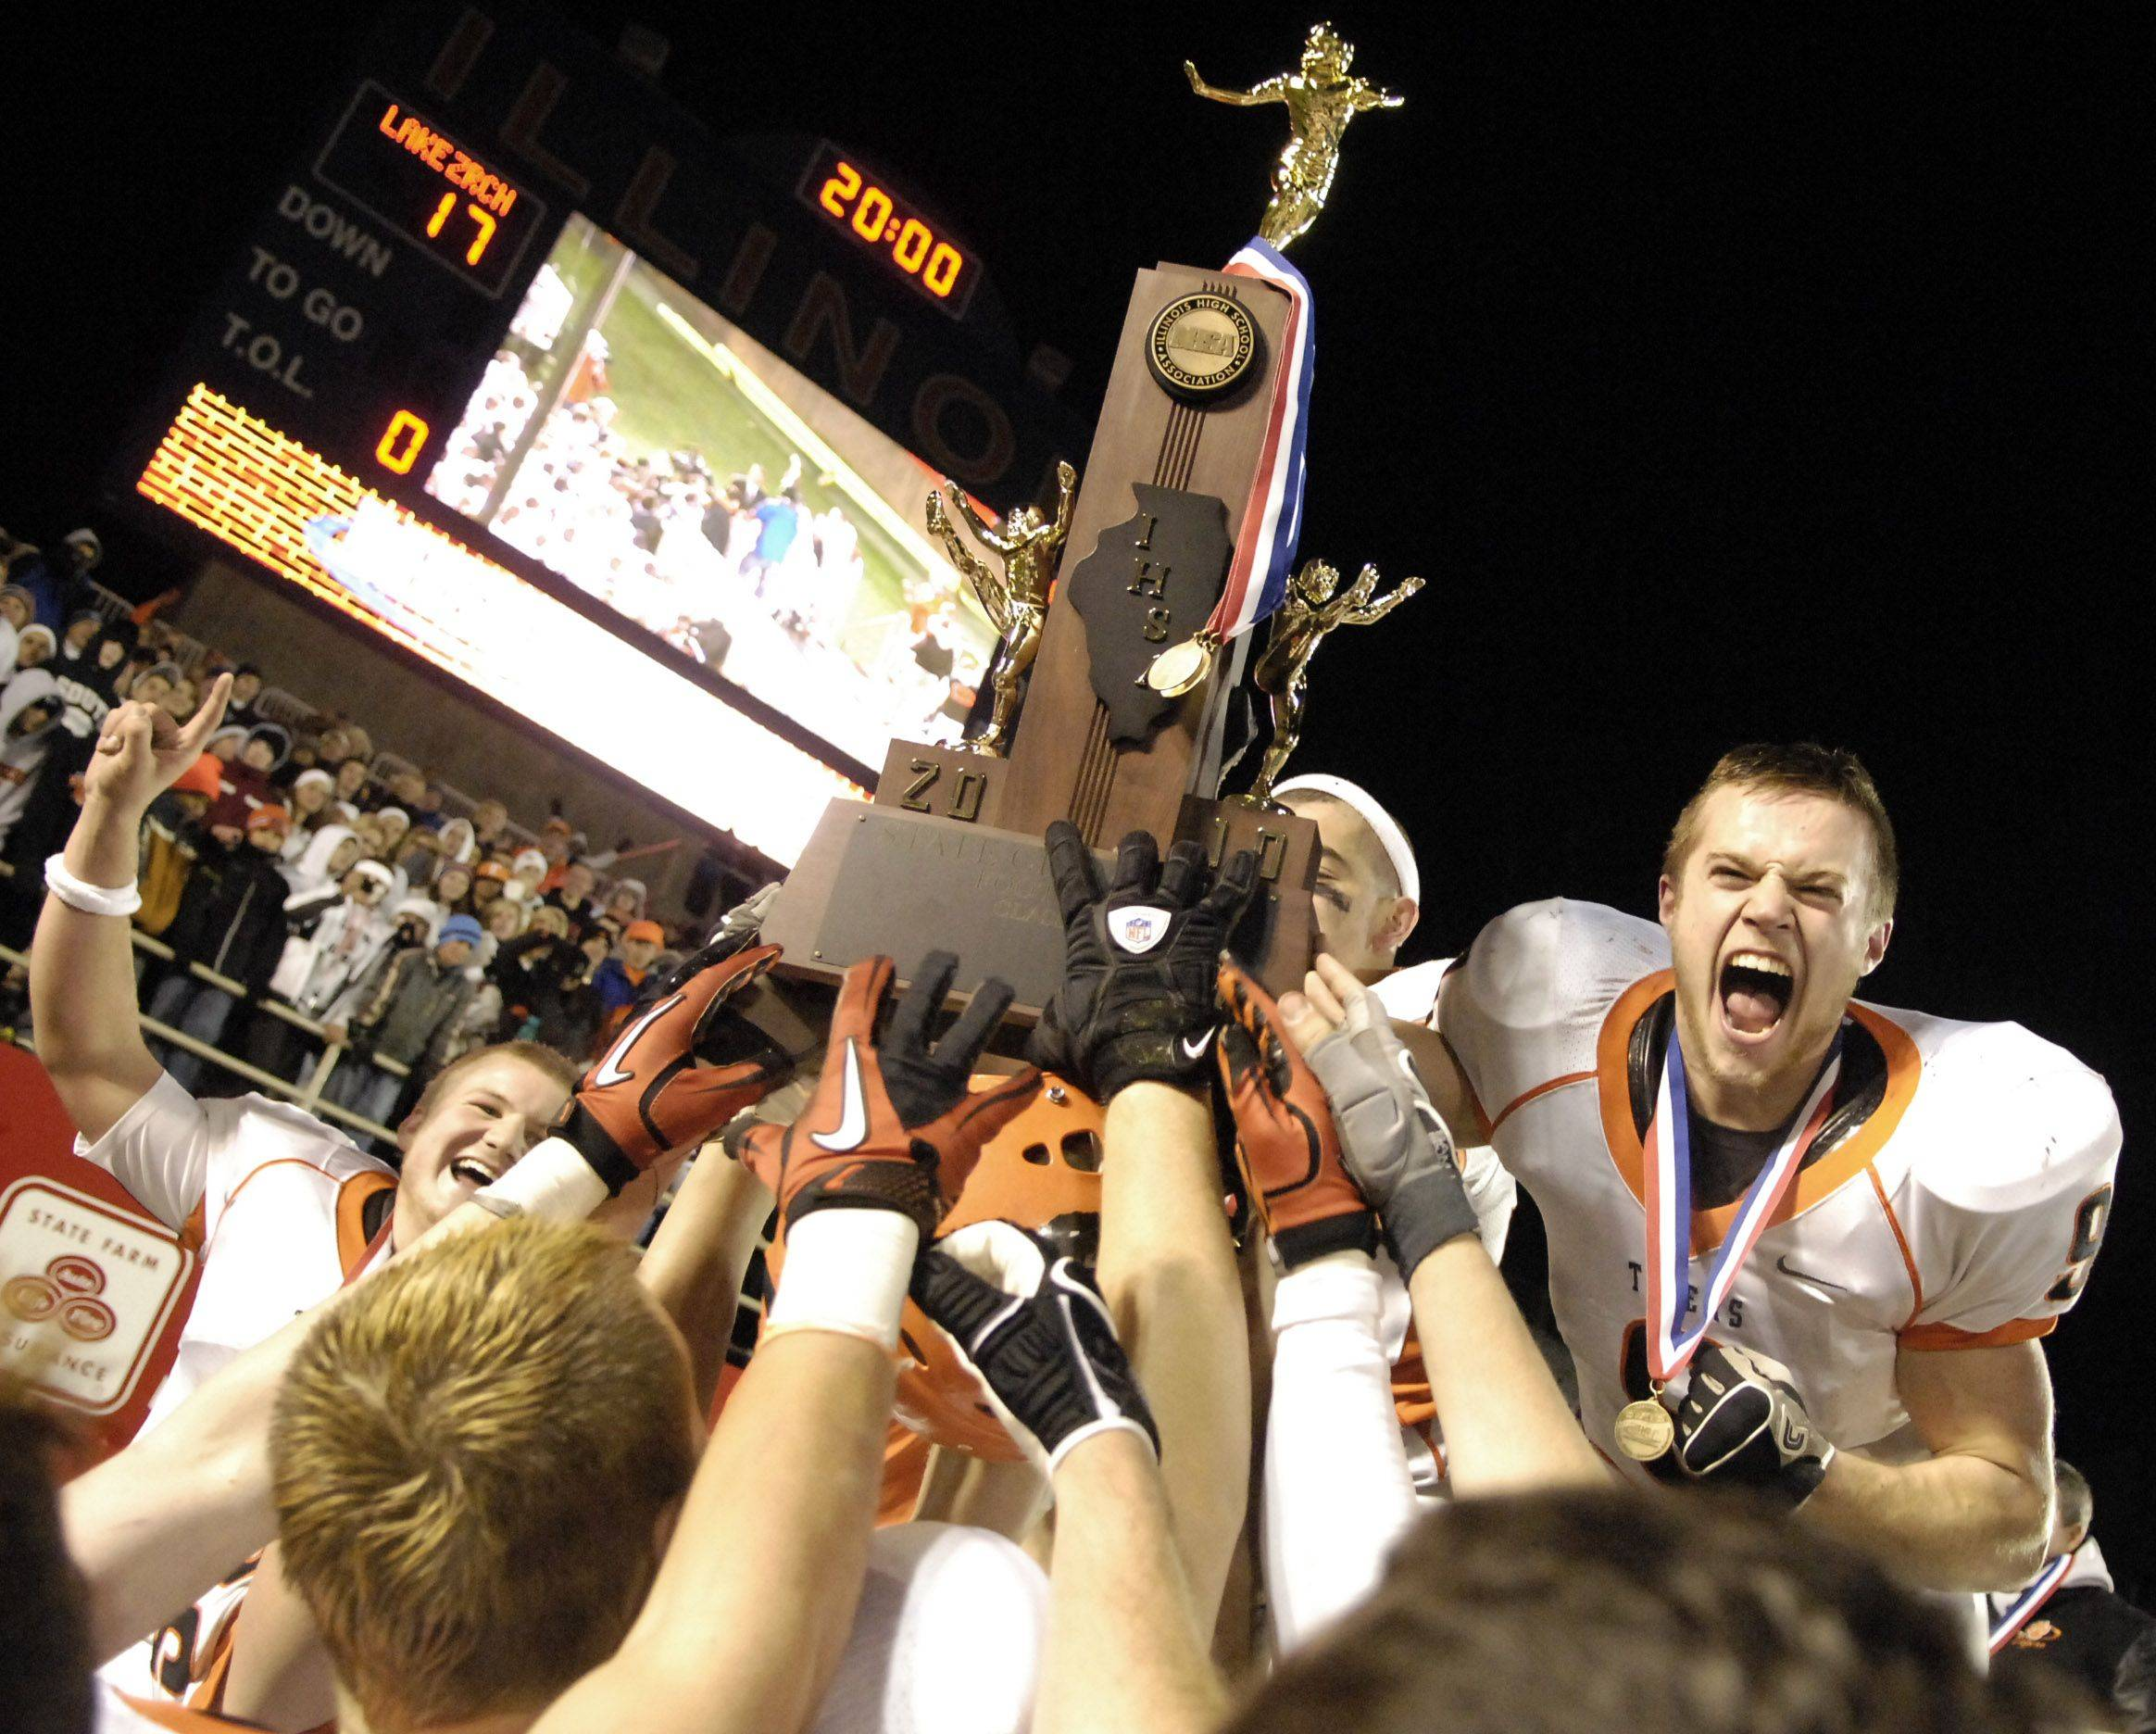 Wheaton Warrenville South's Matt Rogers (right) and his fellow captains hold up the championship trophy after beating Lake Zurich during the Class 7A state final in Champaign Saturday.